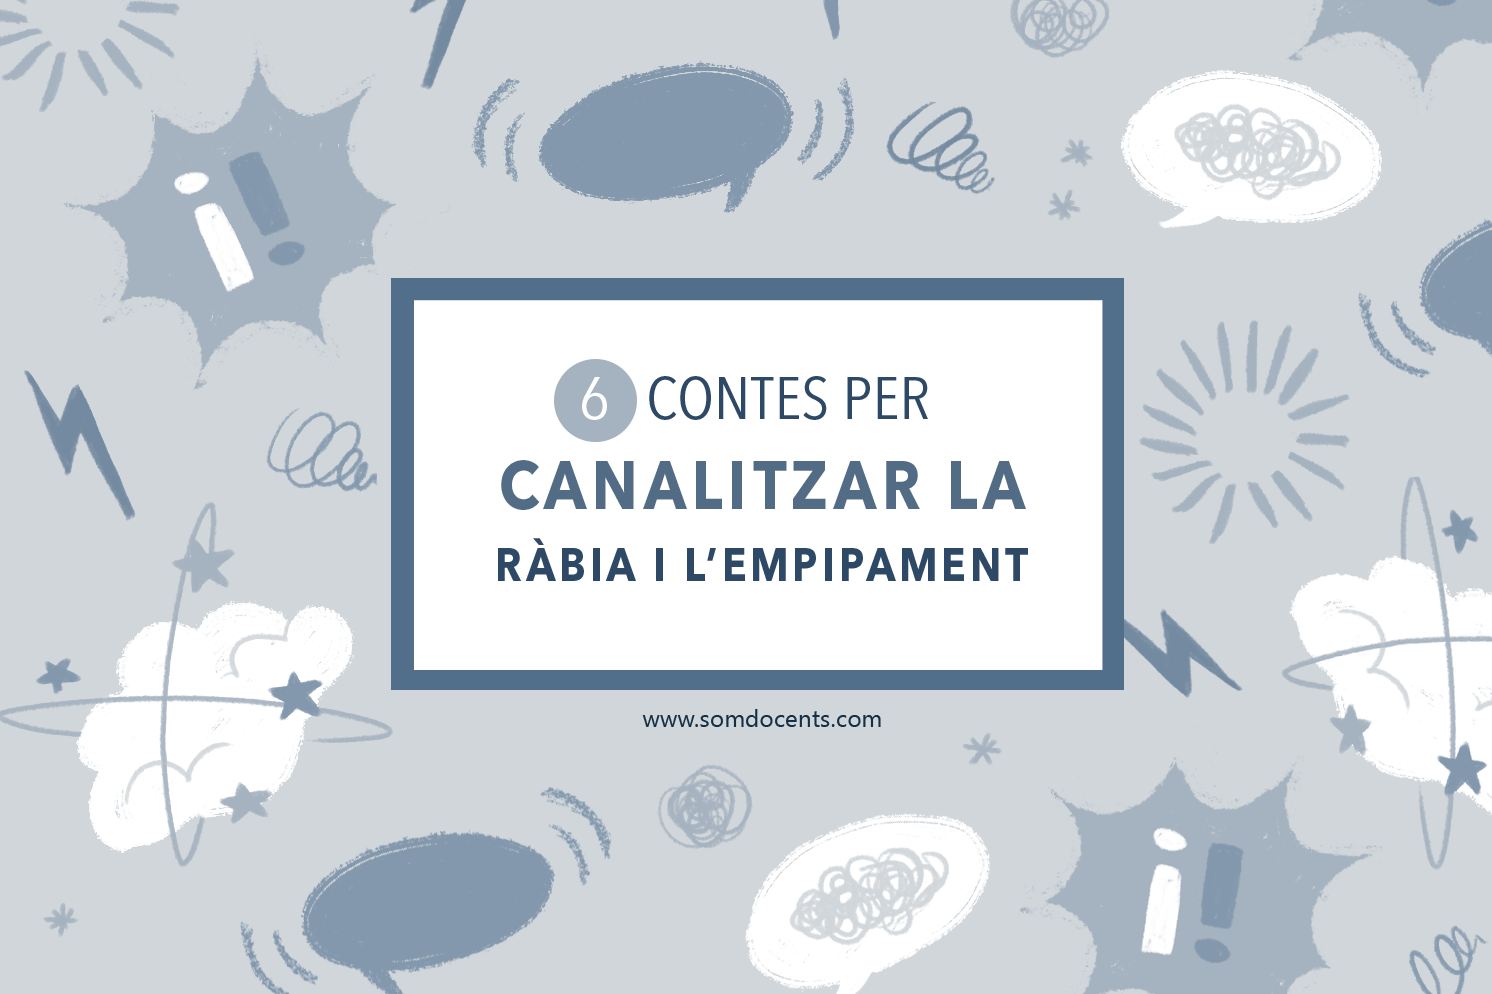 Somdocents-contes-rabia